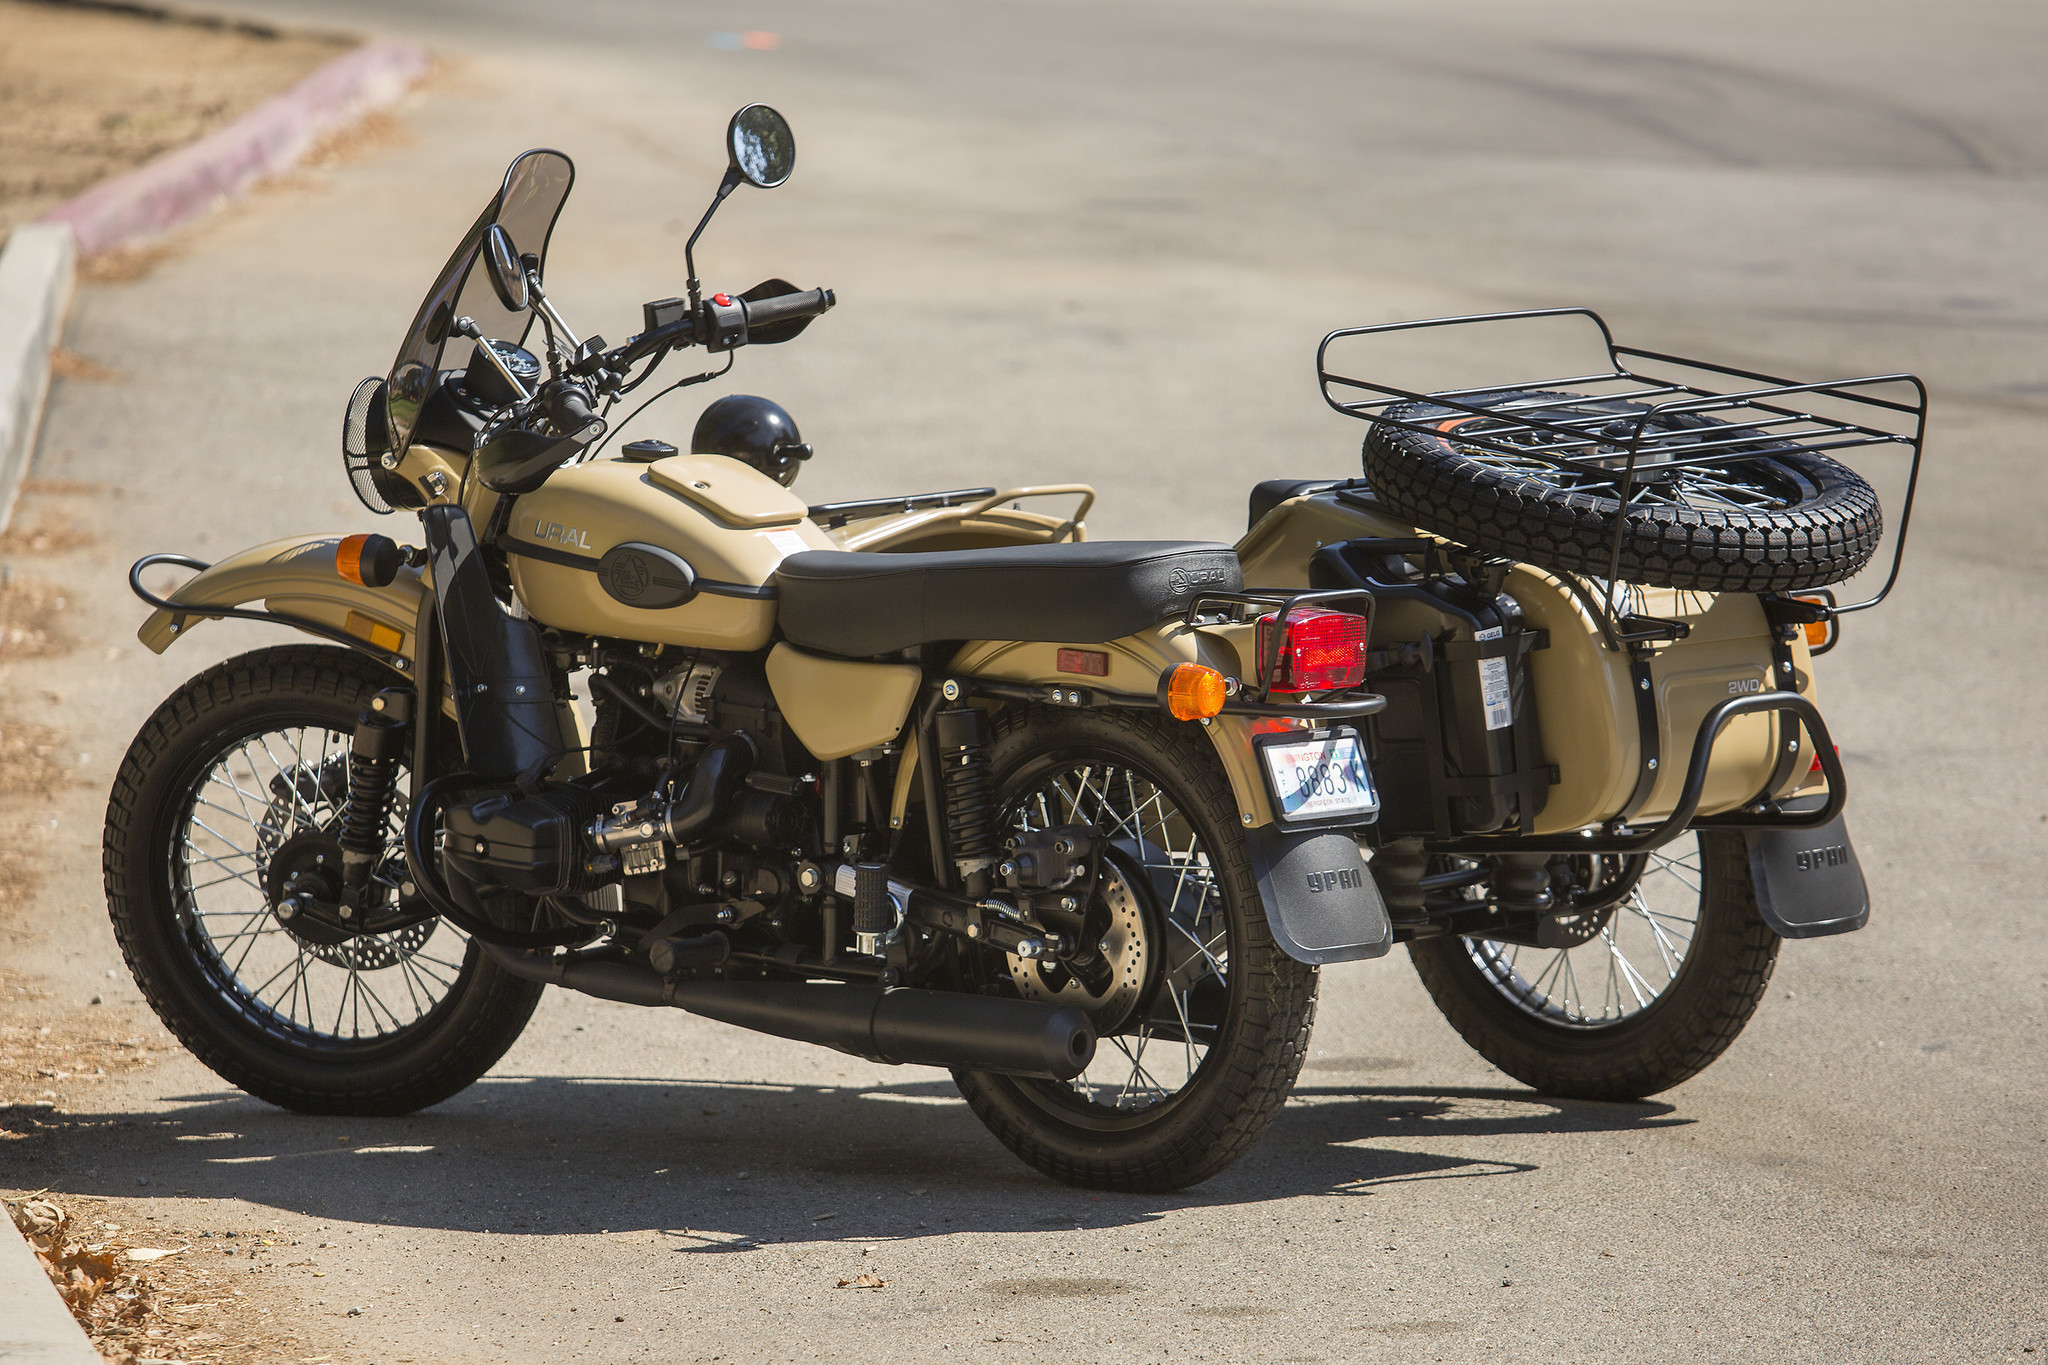 Ural Sahara This Third Wheel Will Get You Noticed La Times